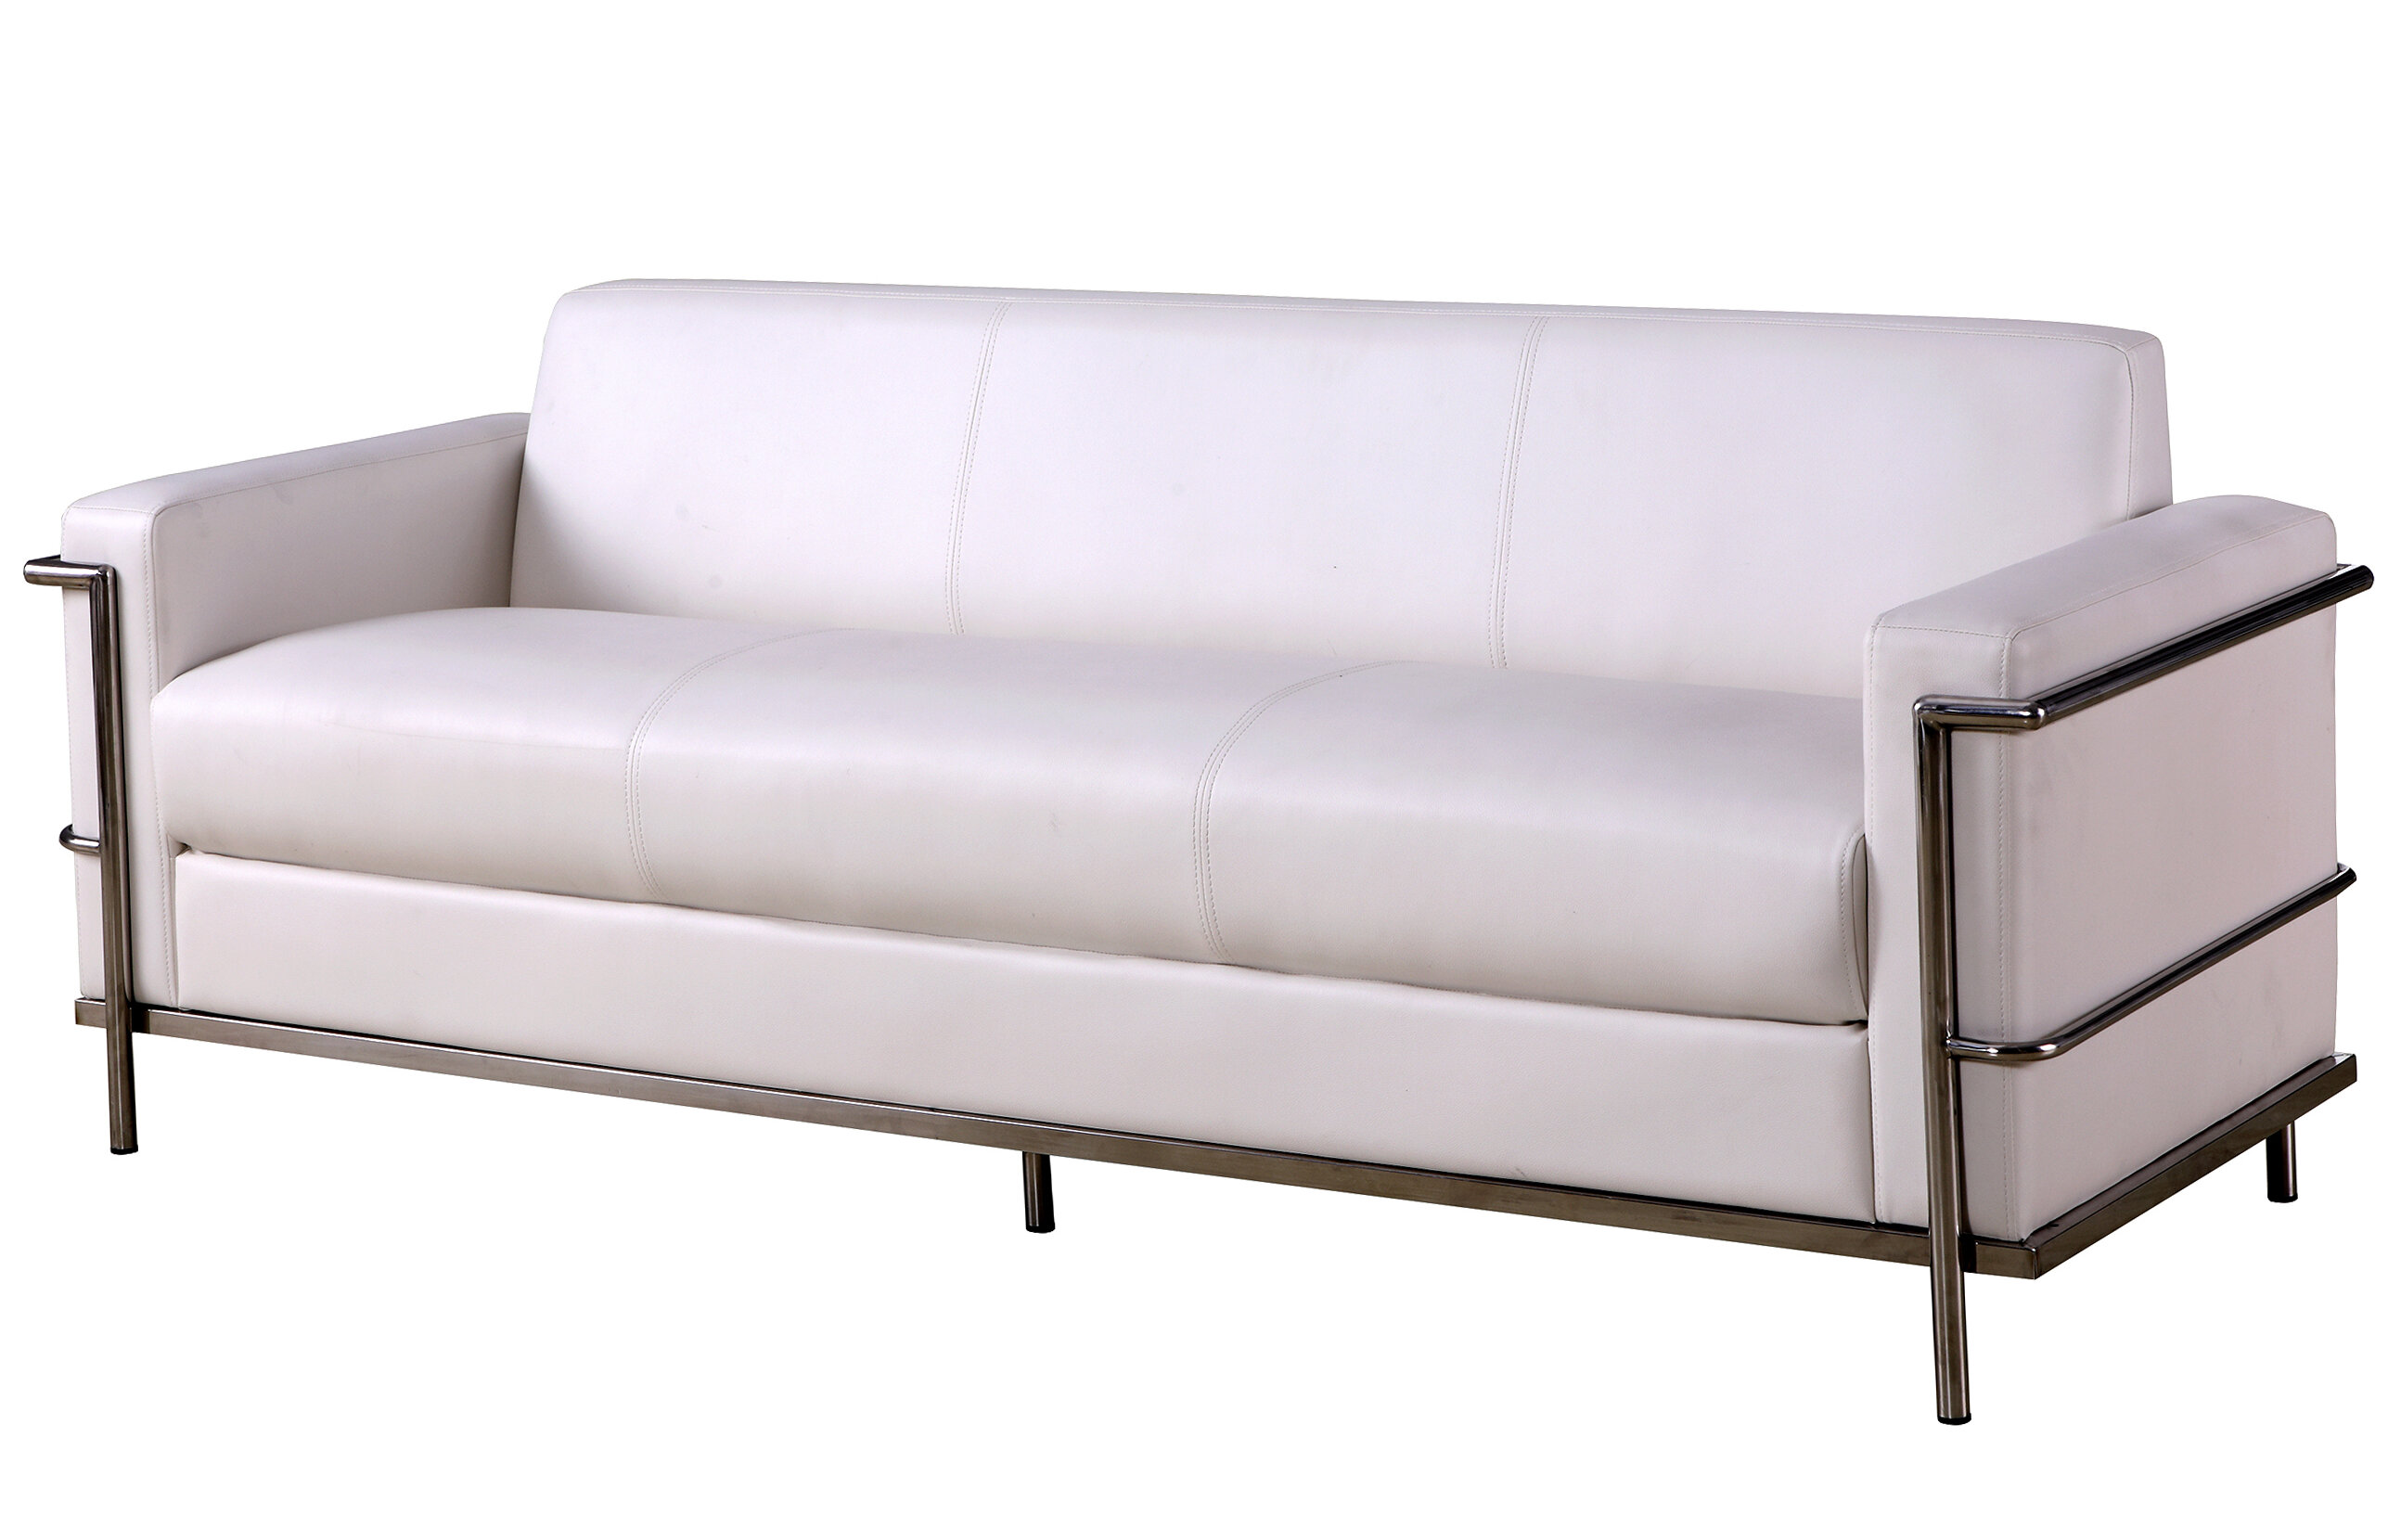 Faux Leather Silver Sofas You Ll Love In 2021 Wayfair